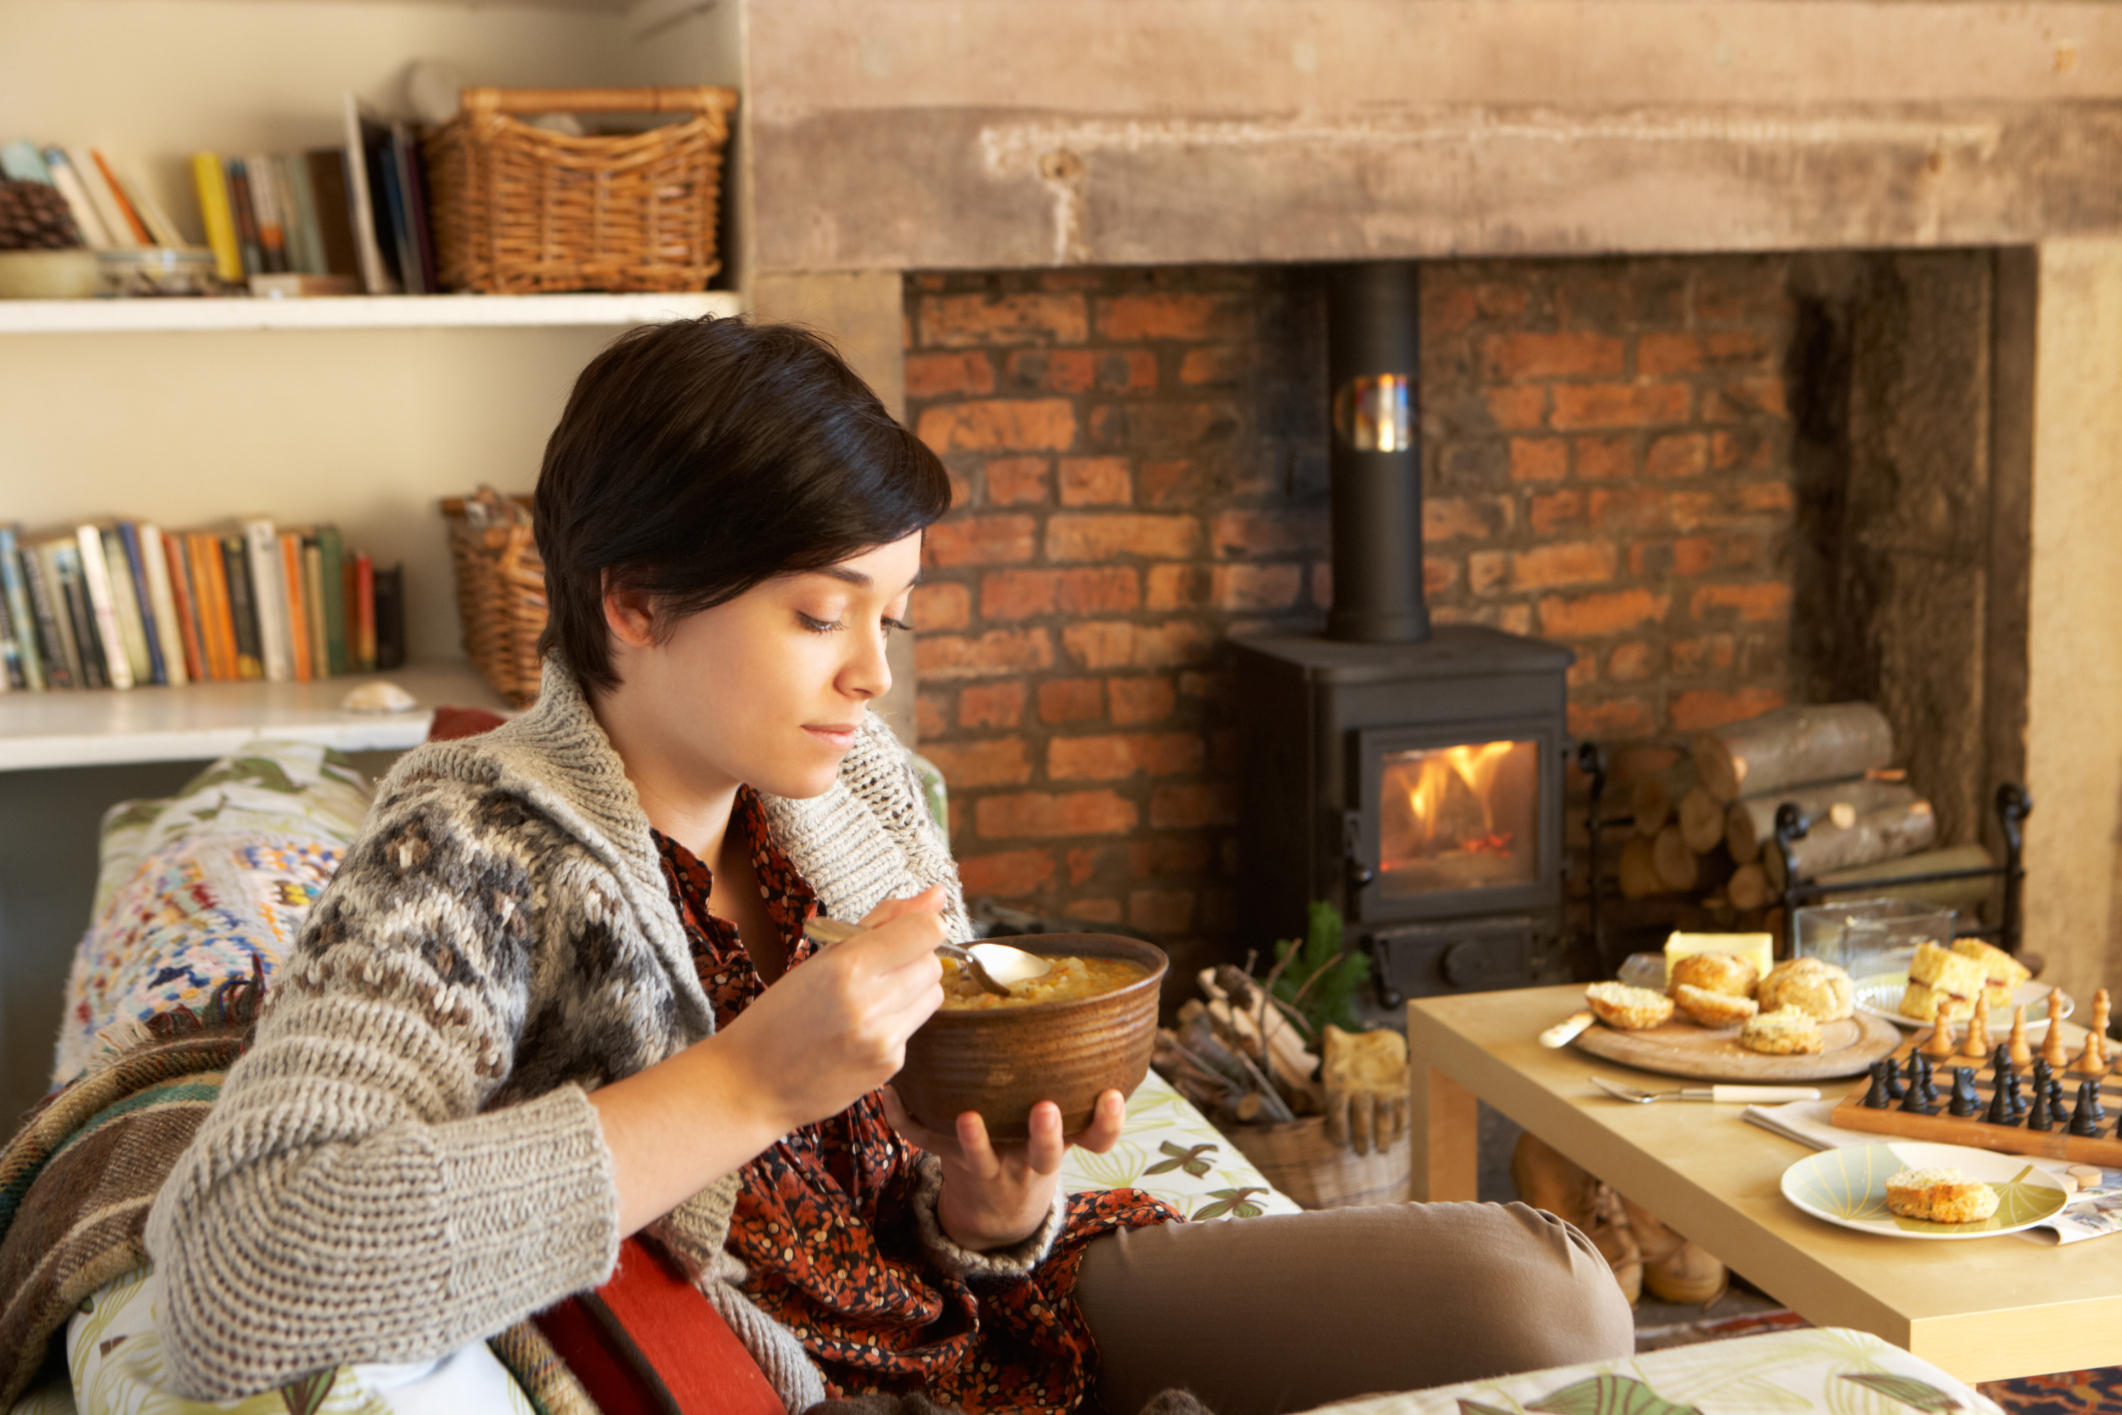 Comfort Food Young Woman Eating By Fire